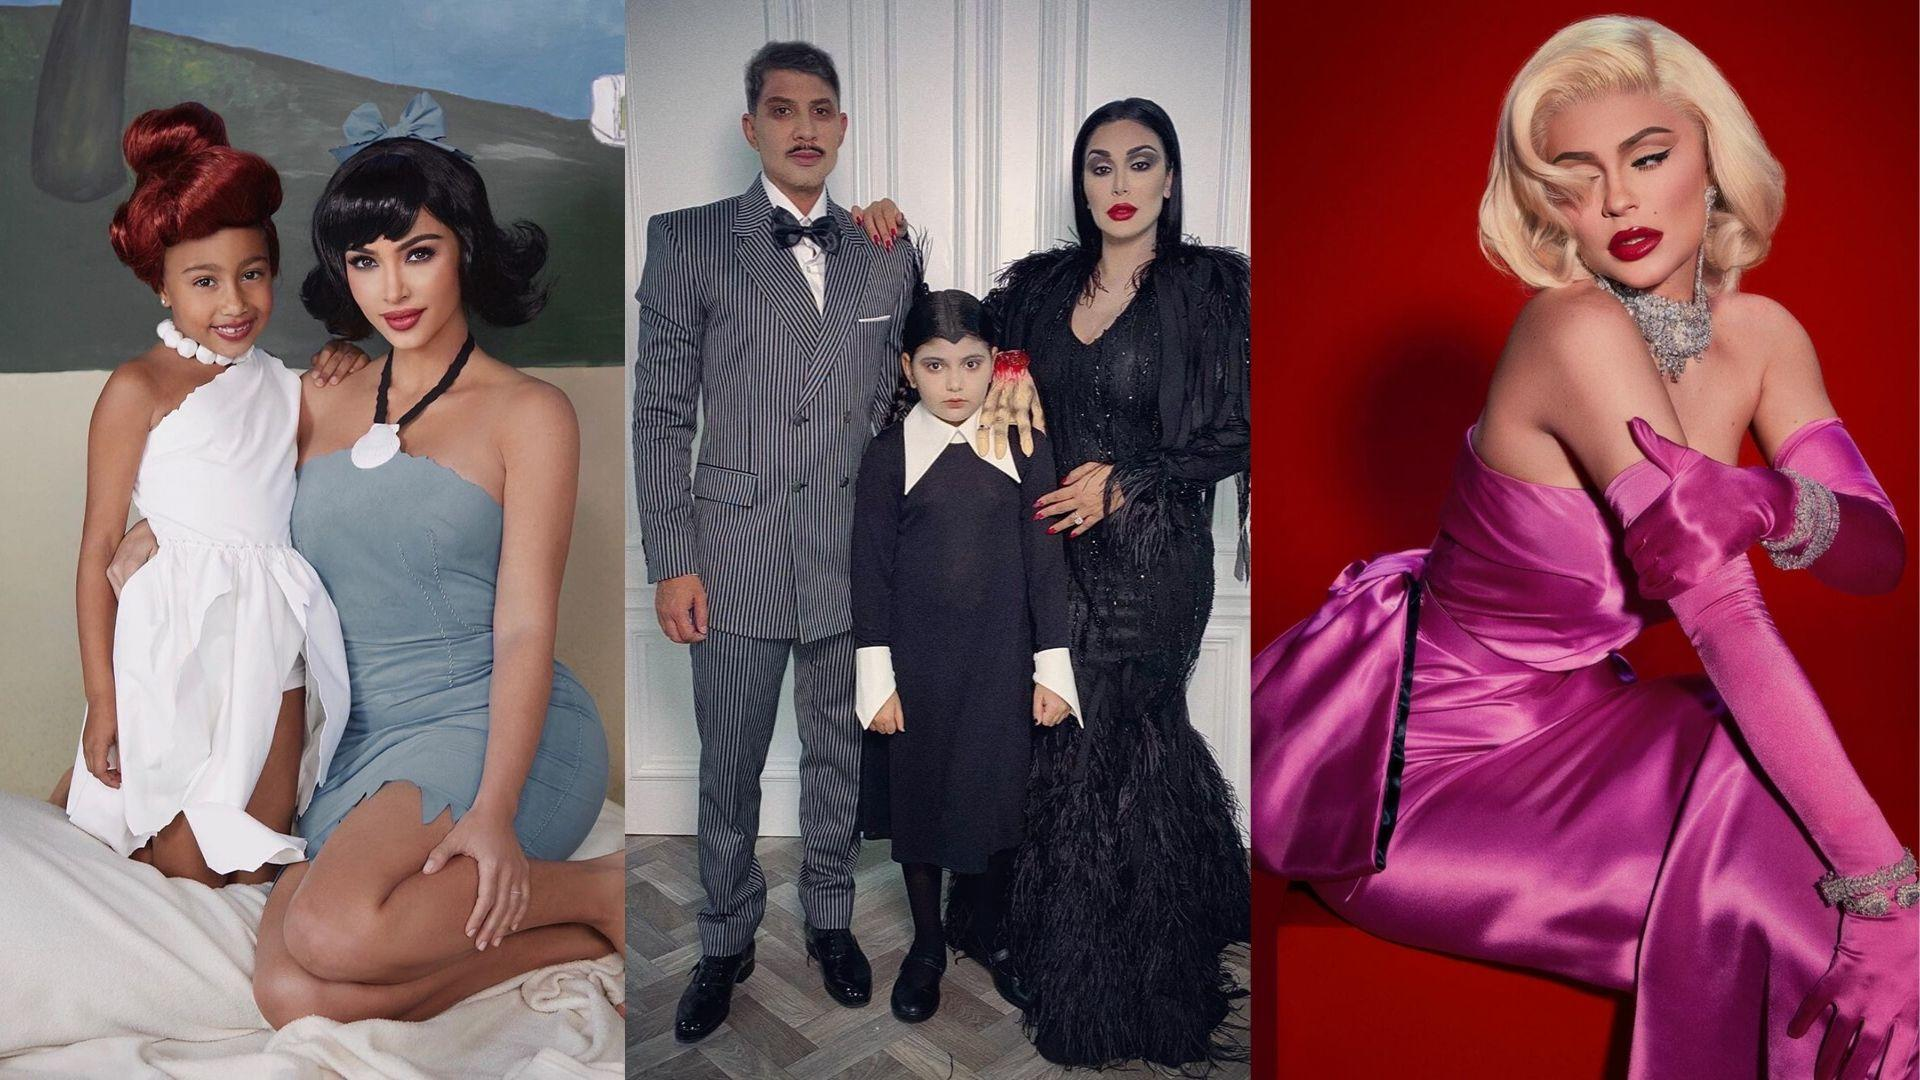 These Are The Best Celeb Halloween 2019 Costumes So Far